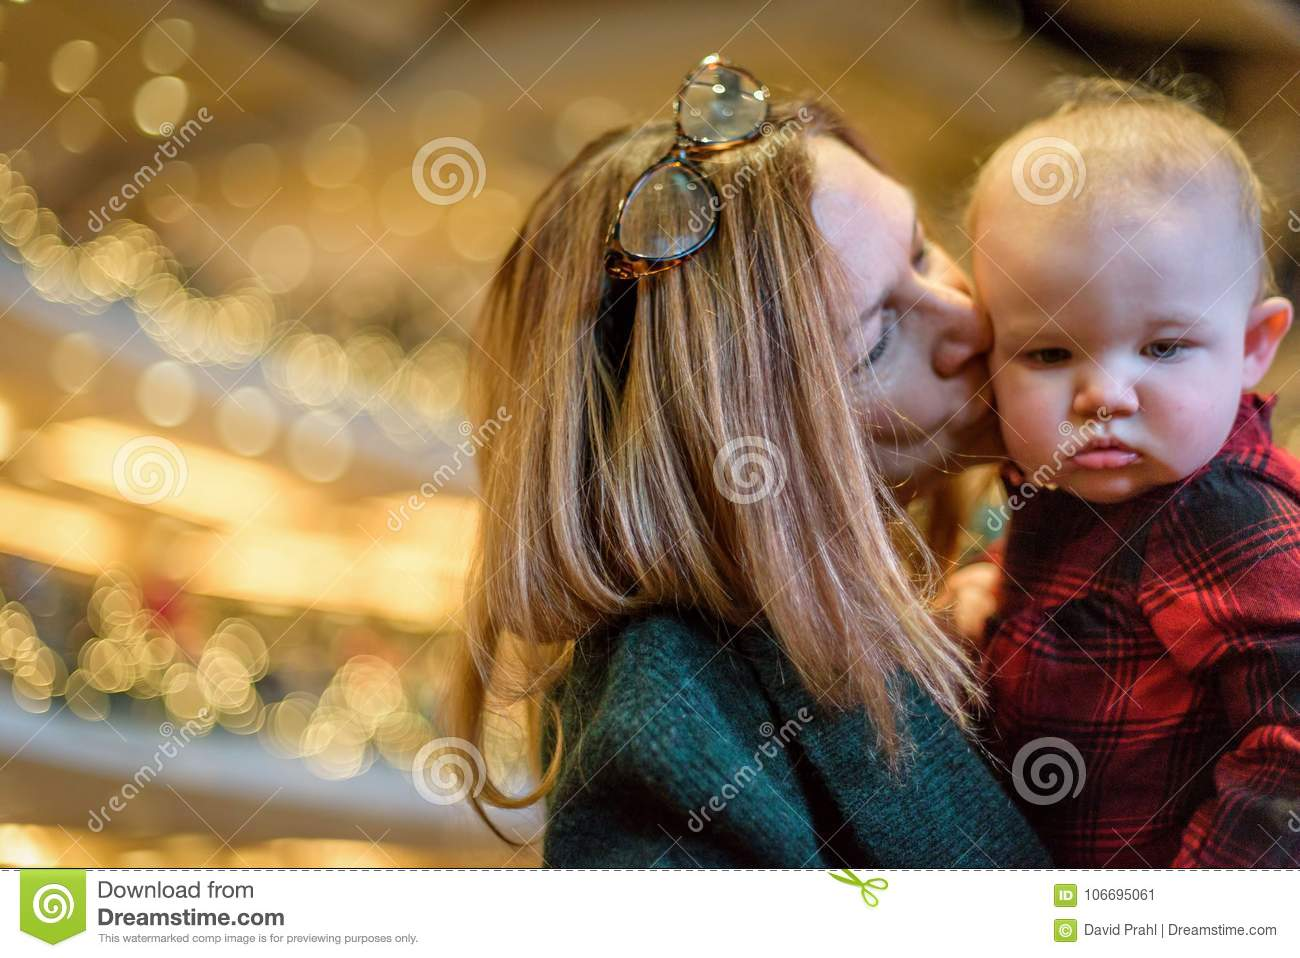 Woman kissing child in church on Christmas Eve